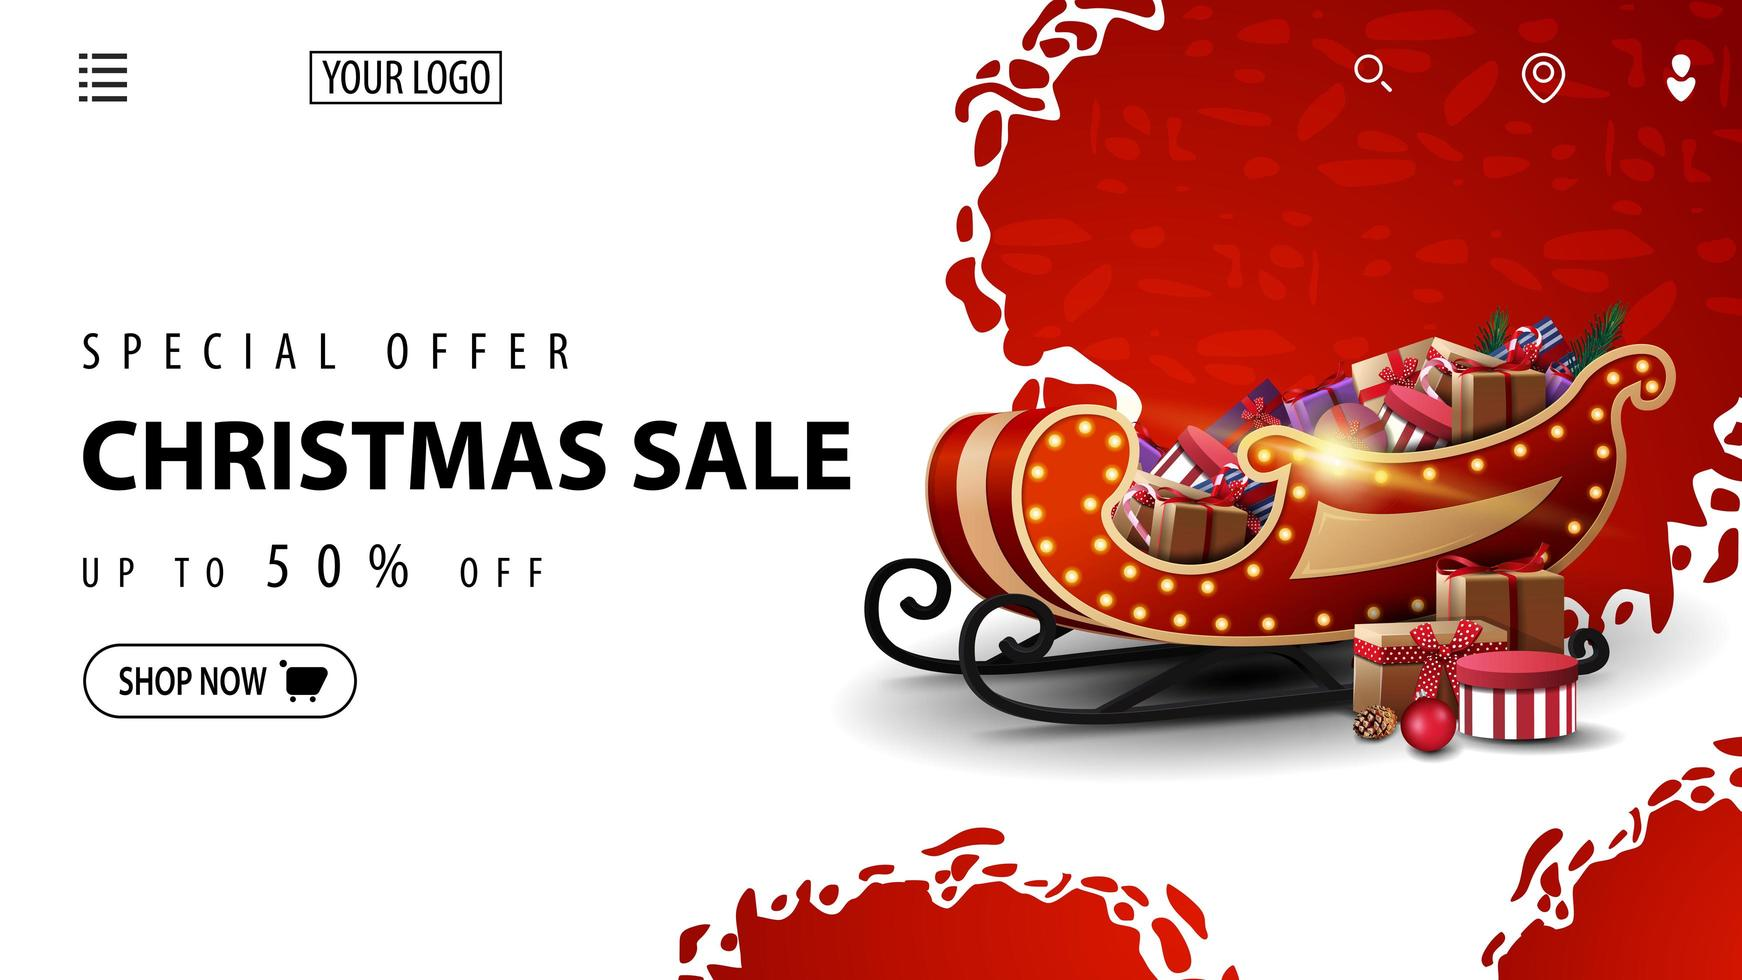 Special offer, Christmas sale, up to 50 off, white and red discount banner for website with Santa Sleigh with presents vector